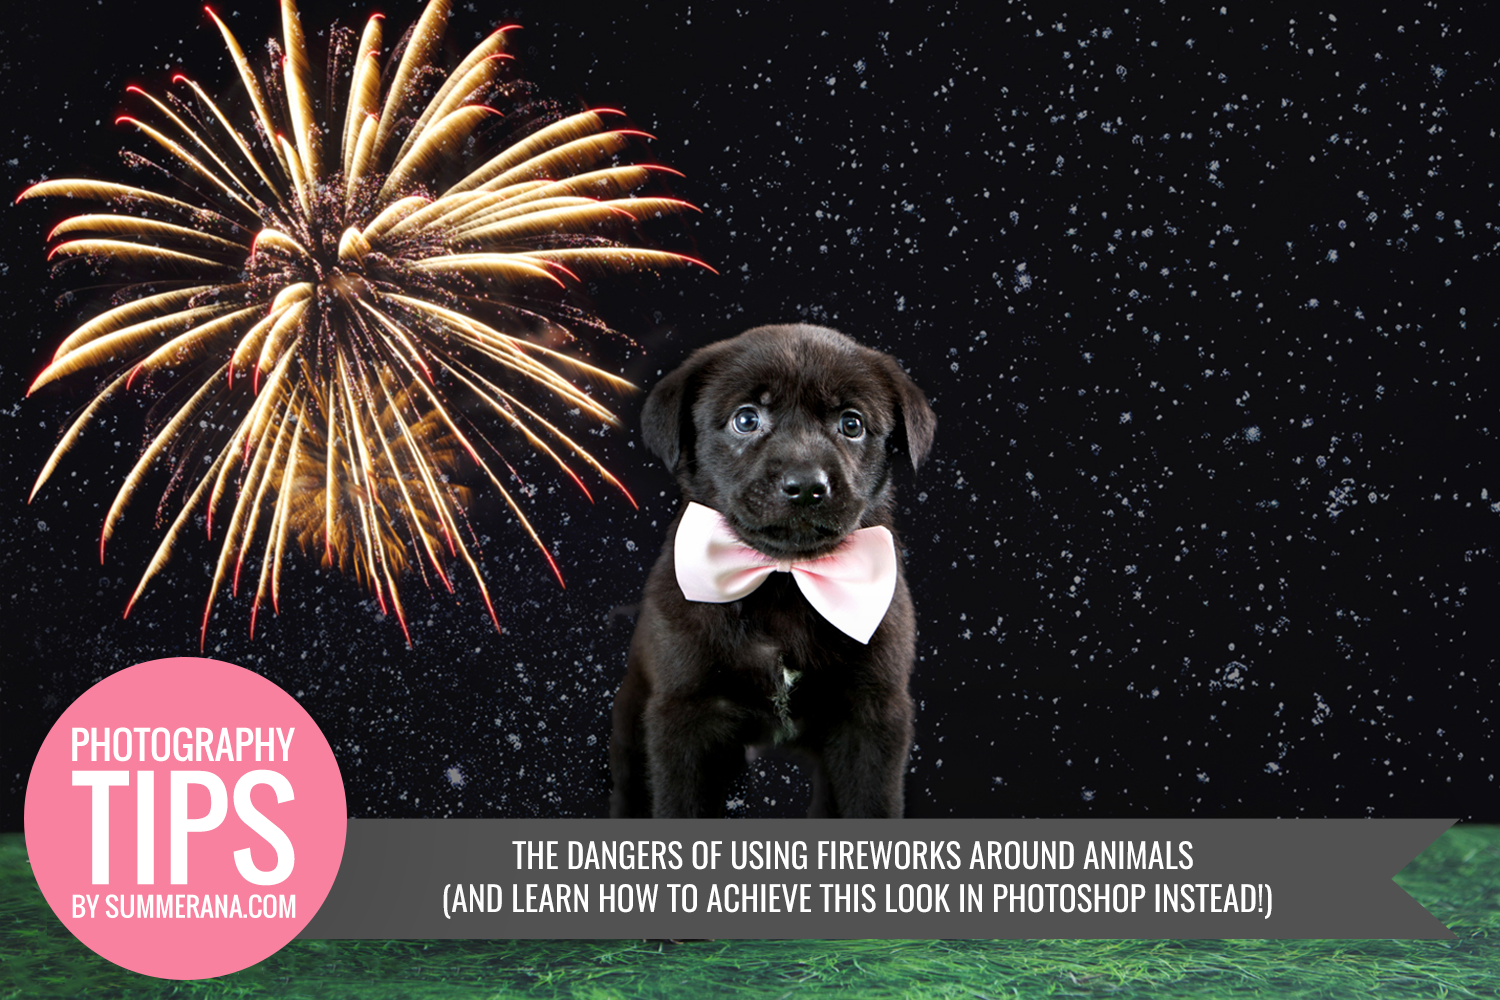 The-Dangers-of-Using-Fireworks-Around-Animals-And-Learn-How-to-Achieve-this-Look-in-Photoshop-Instead!